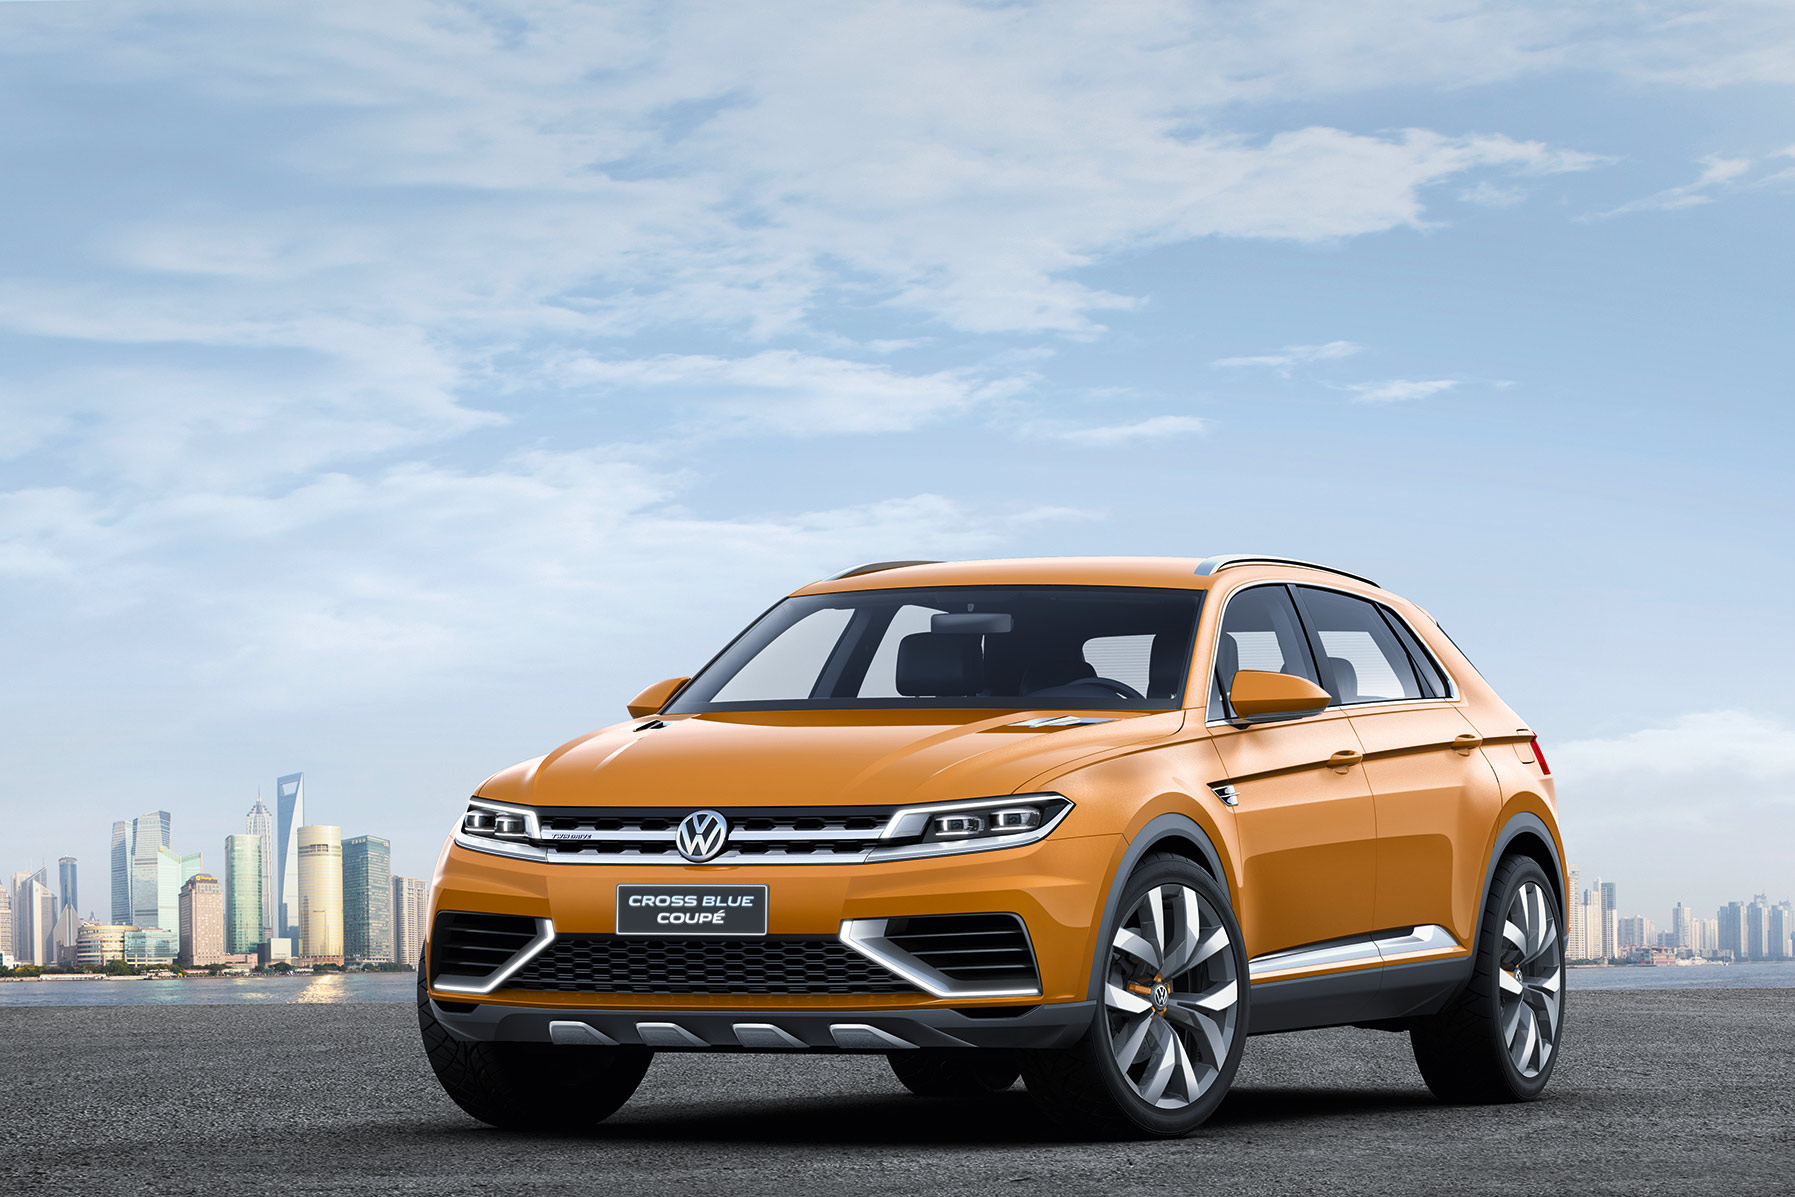 volkswagen-crossblue-coupe-concept-010